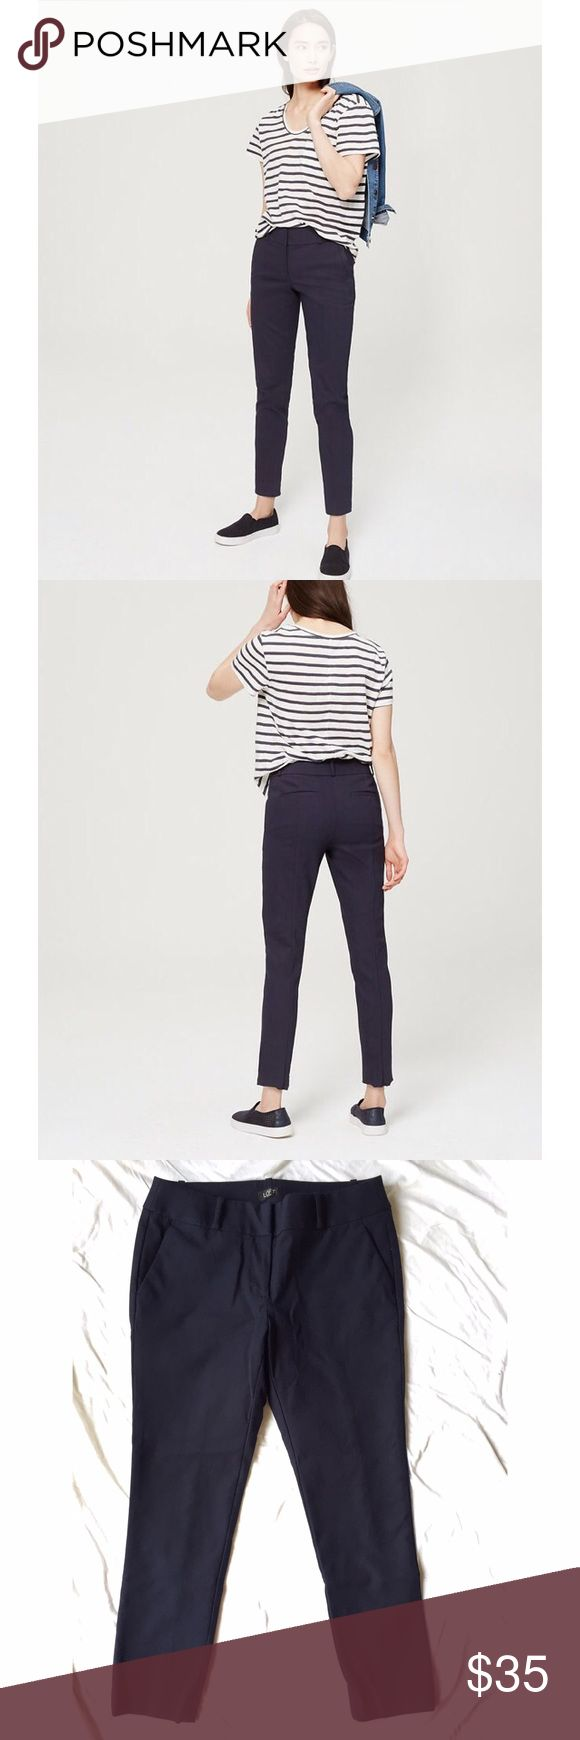 """Ann Taylor LOFT Petites - Skinny Ankle Pants Skinny ankle pant in navy blue. From website: """"our curvy fit - your perfect fit if your waist is small, but your hips are curvier."""" Petite: 26"""" inseam. Ann Taylor Pants"""